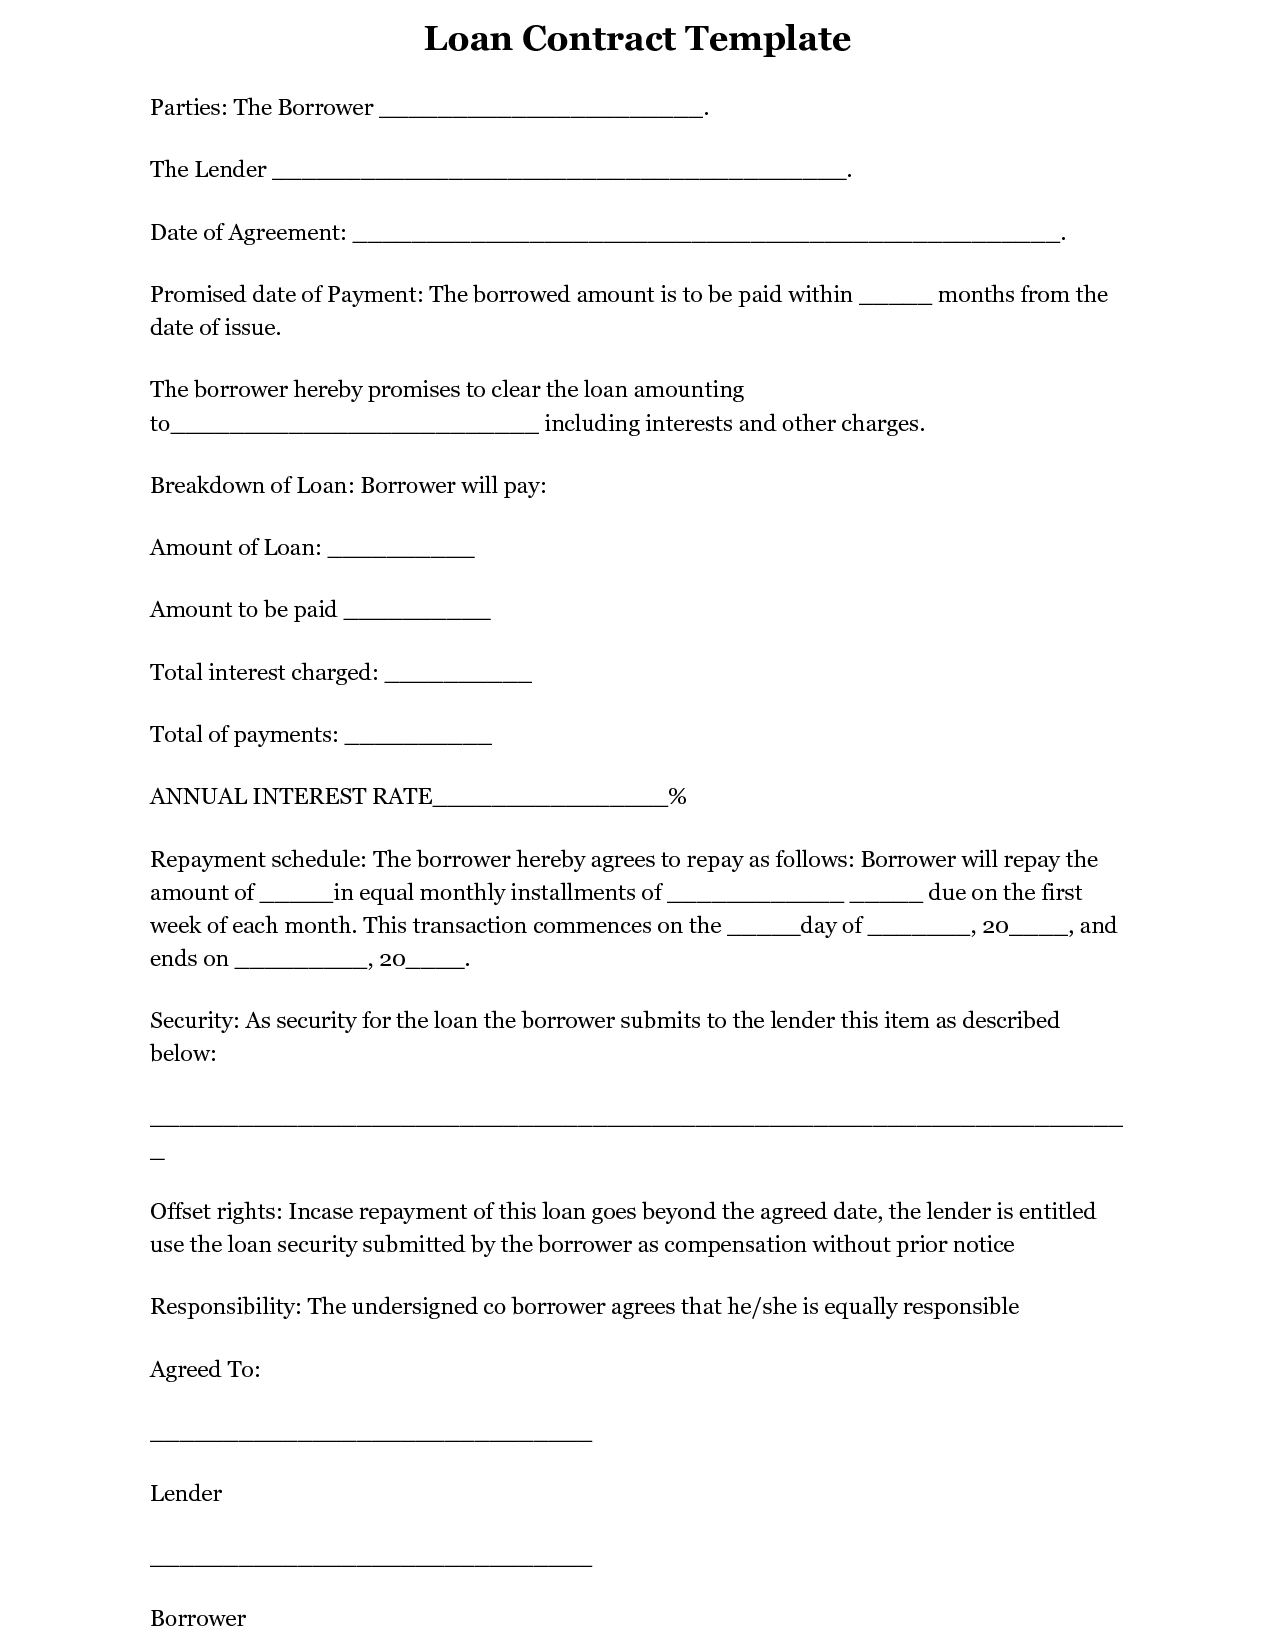 Marvelous Simple Loan Agreement Form Free Loan Contract Template 26 Examples In Word  Pdf Free, Commercial Loan Agreement Template Loan Agreement Form Template,  ...  Free Loan Agreement